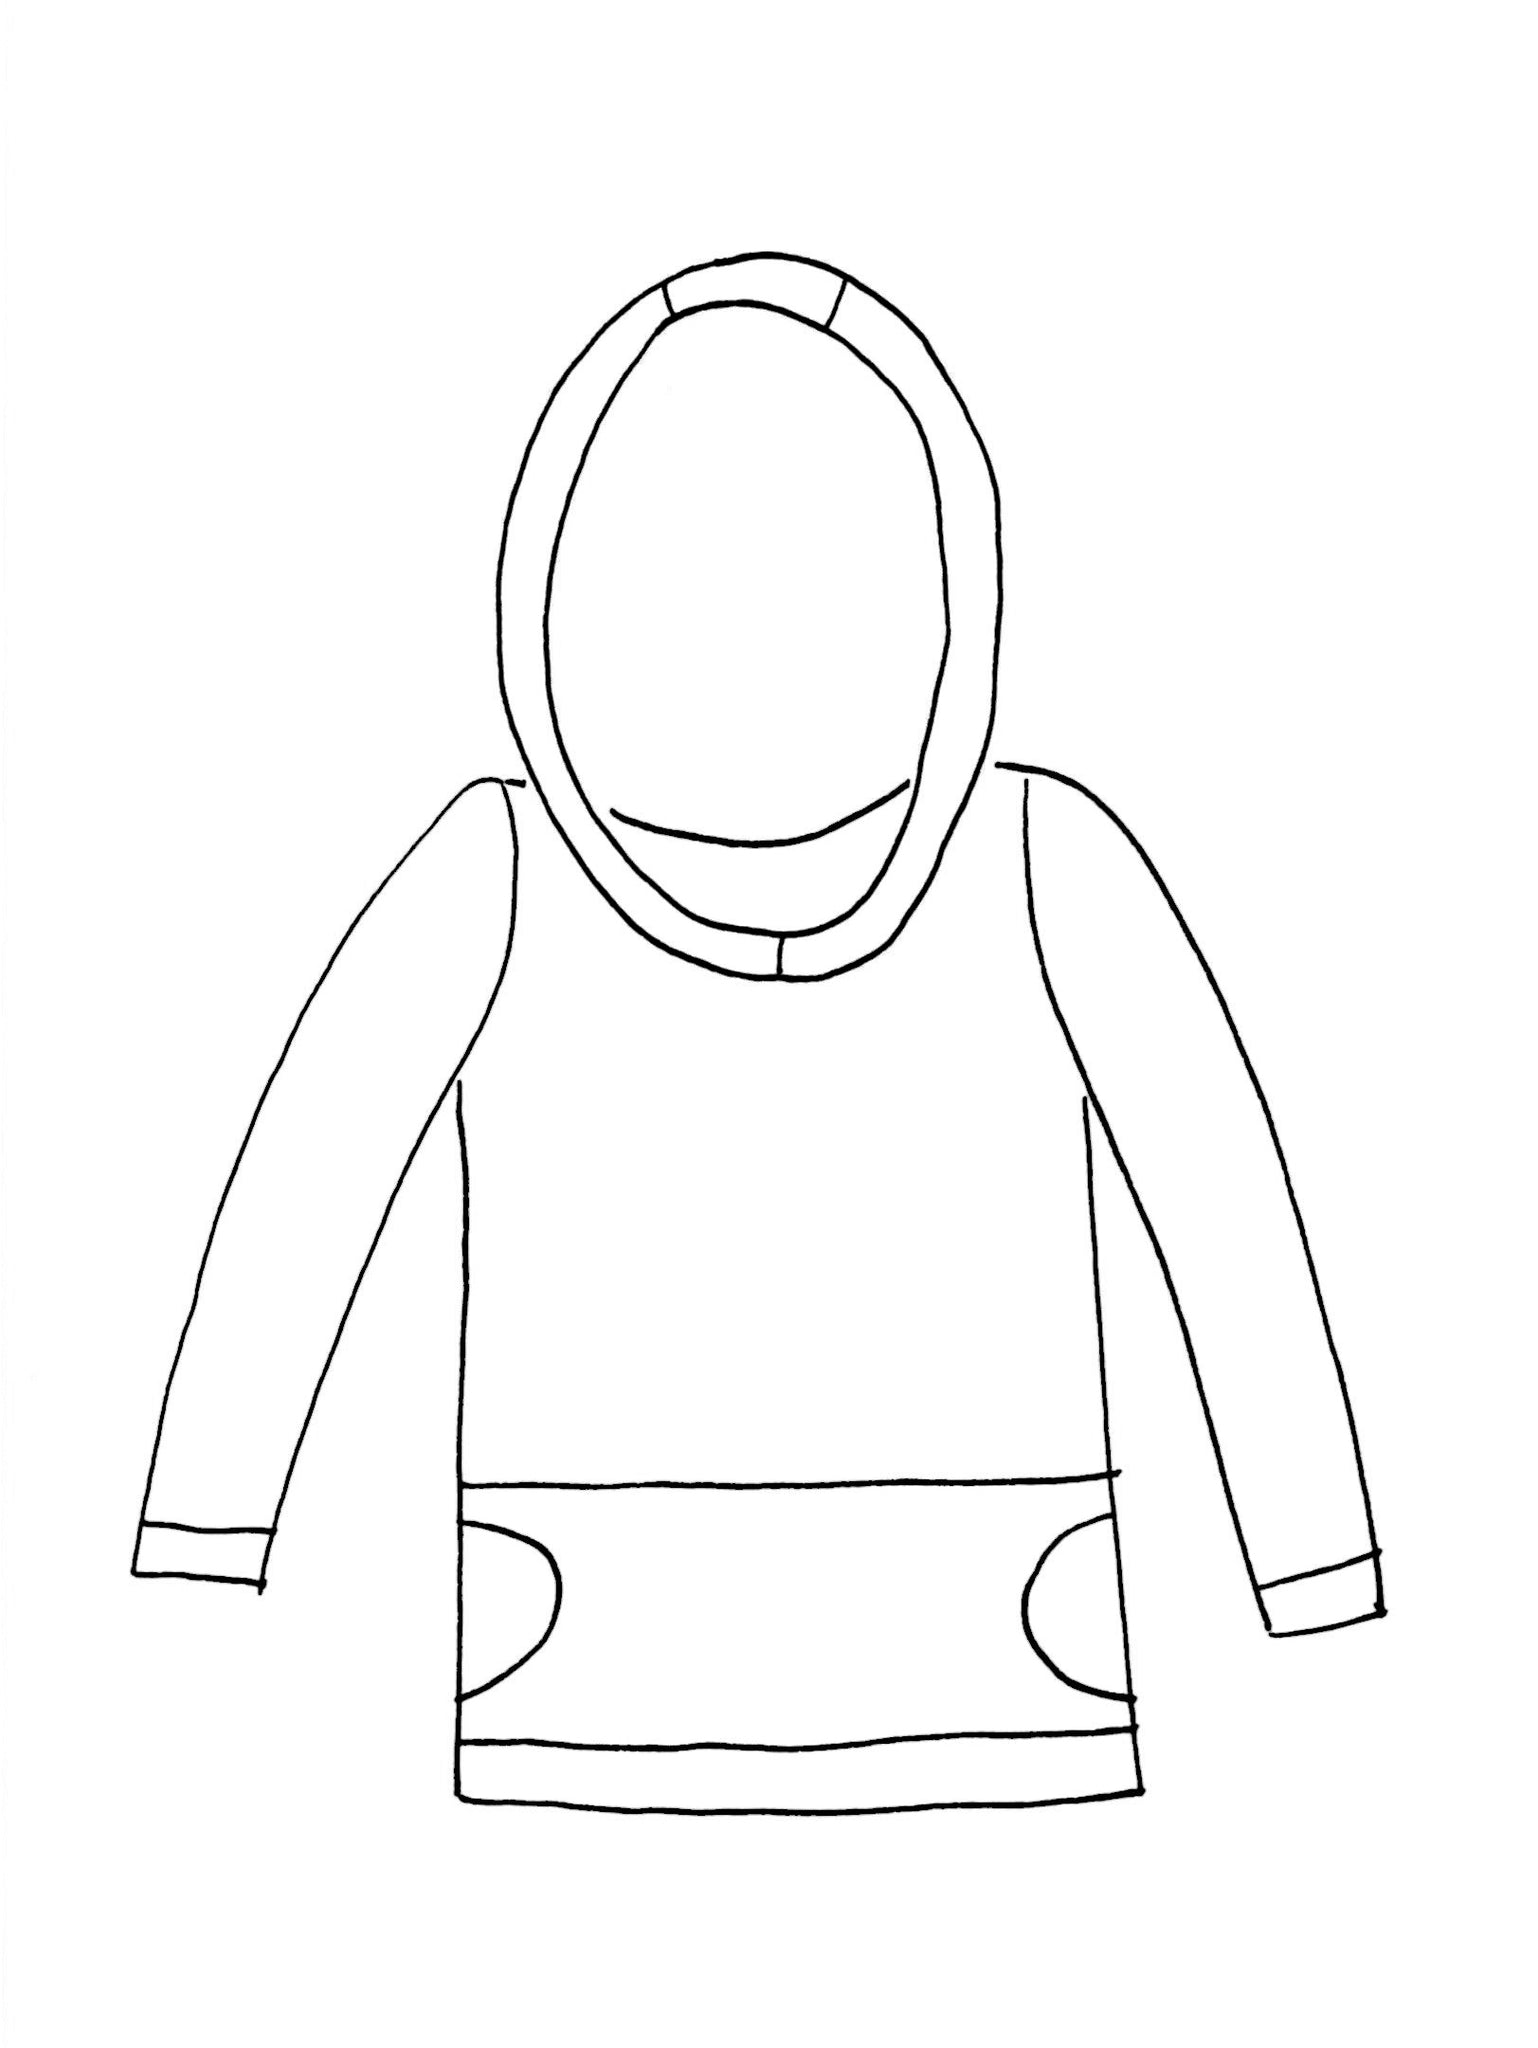 outline of a hoodie to color in you can design your own hoodie